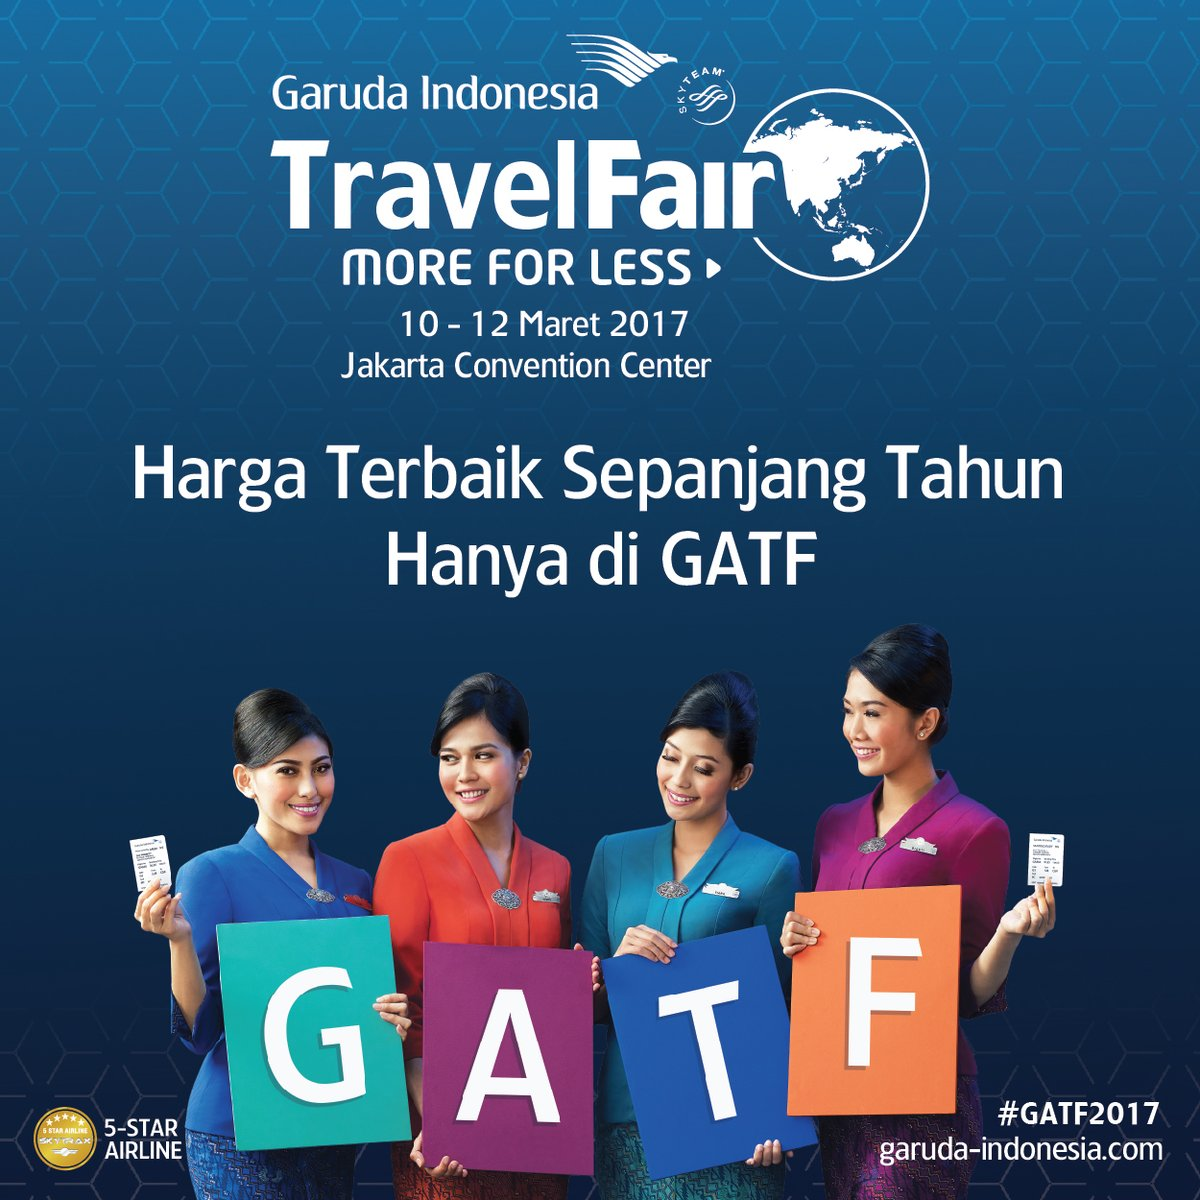 Garuda Indonesia Travel Fair (phase 1)